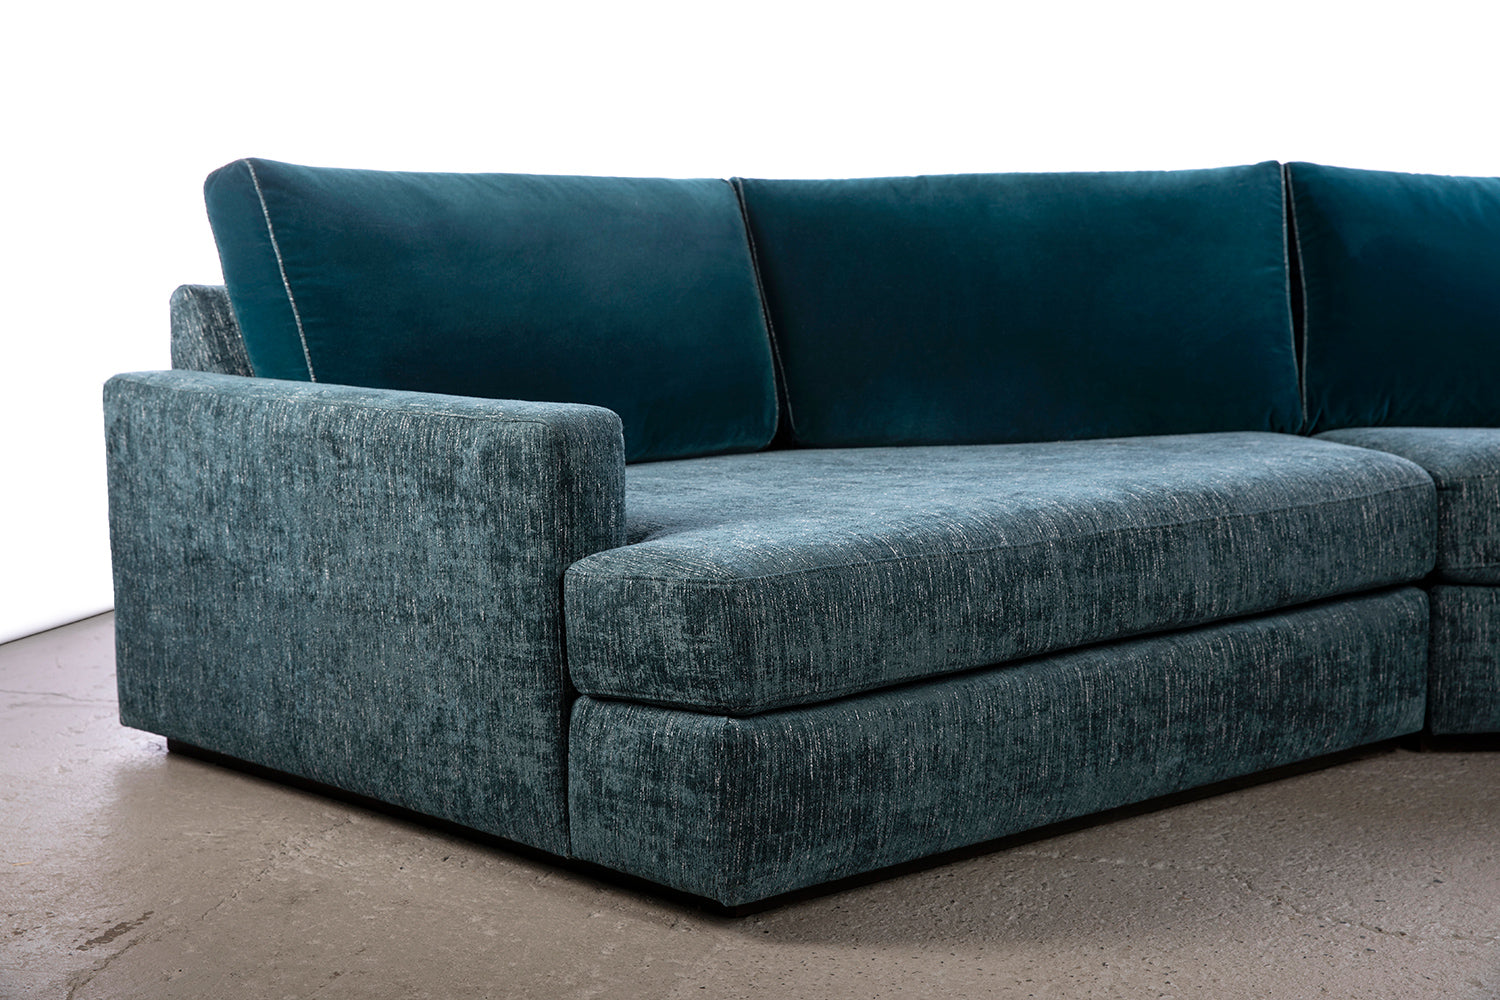 FFABB Coasty Slim Modular Sectional